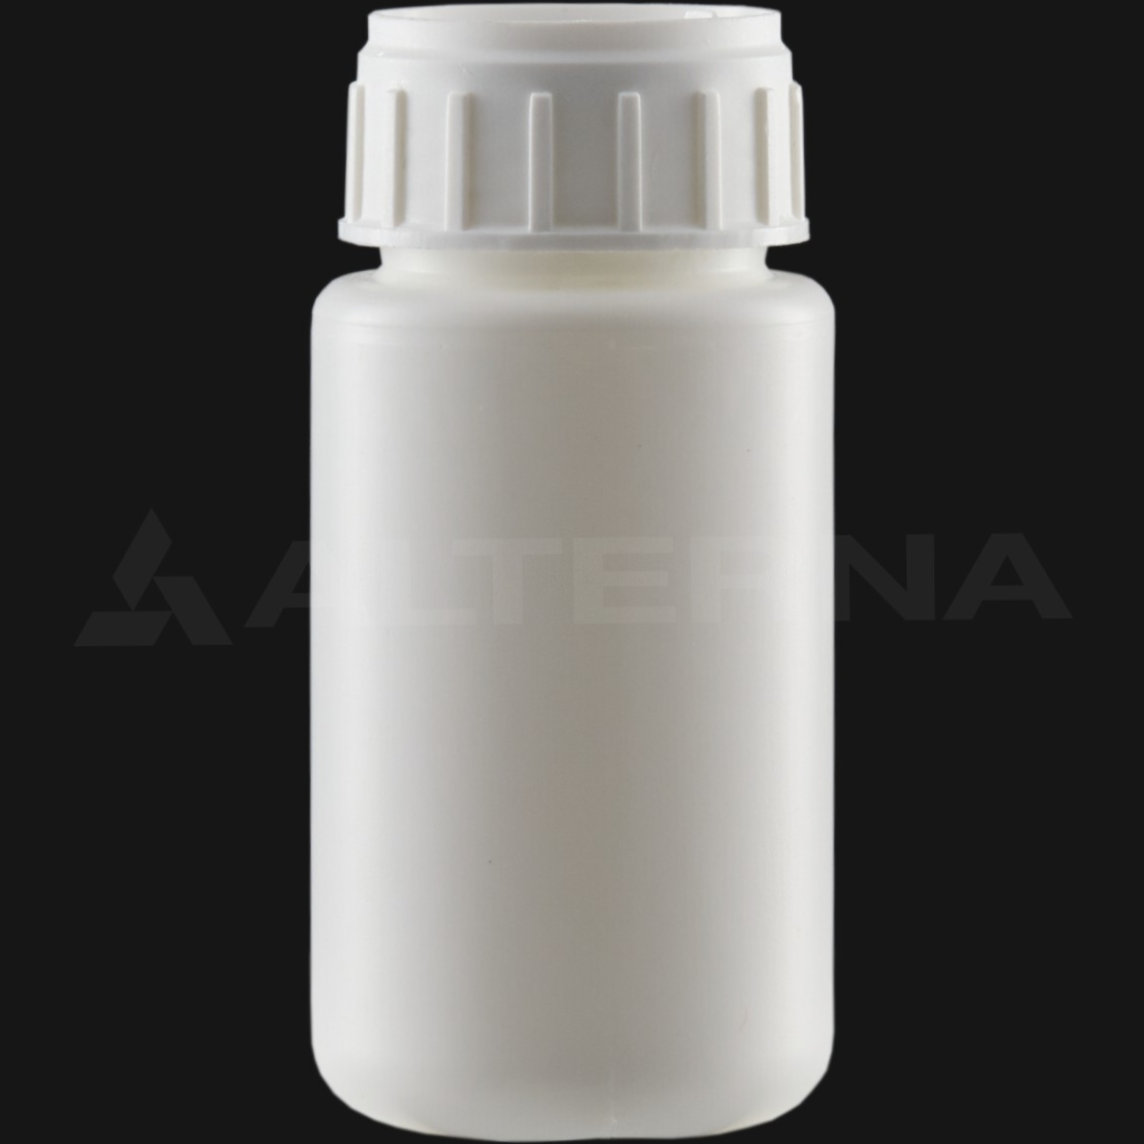 100 ml HDPE Bottle with 38 mm Alu. Foil Seal Vented Cap